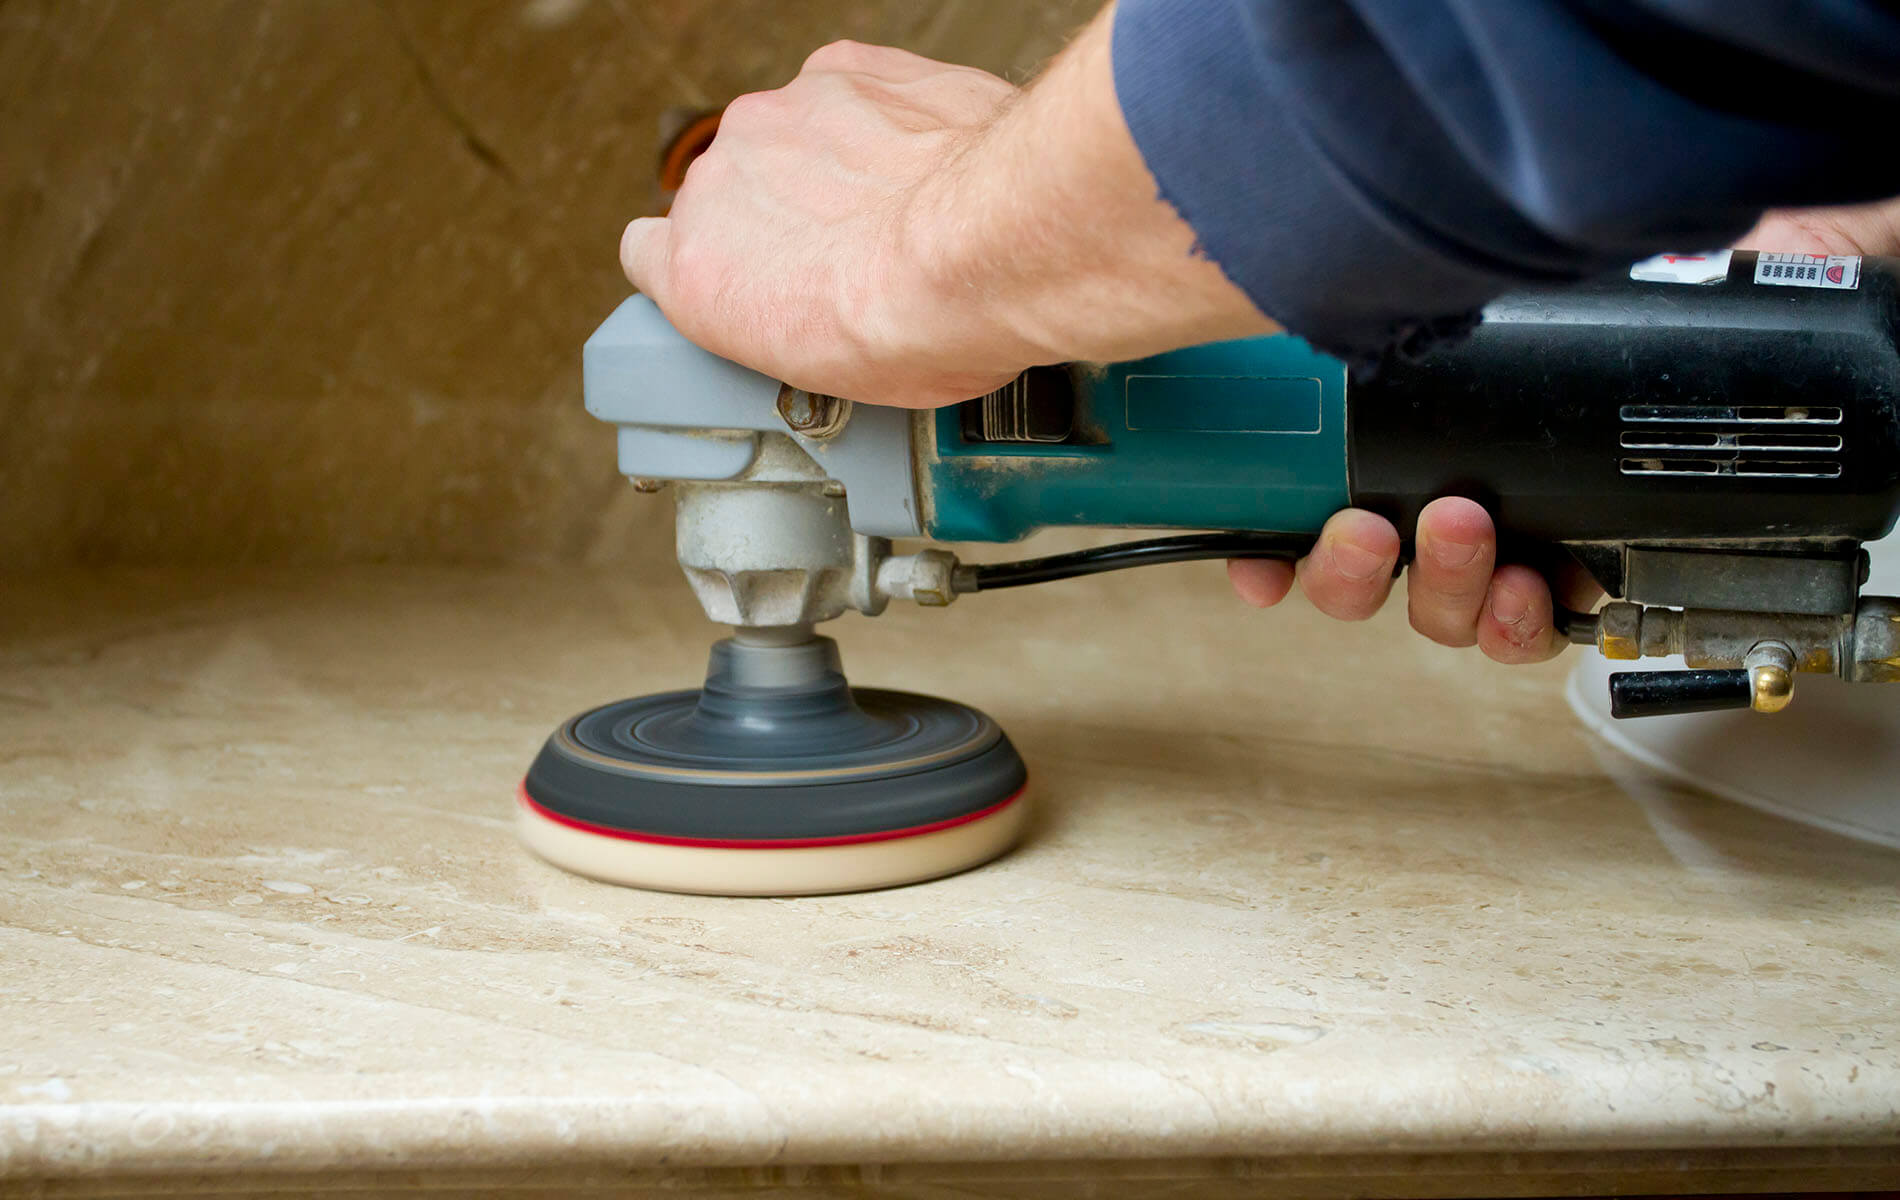 How To Grind Granite Countertops Performance Abrasives Sandpaper Rolls Belts Discs